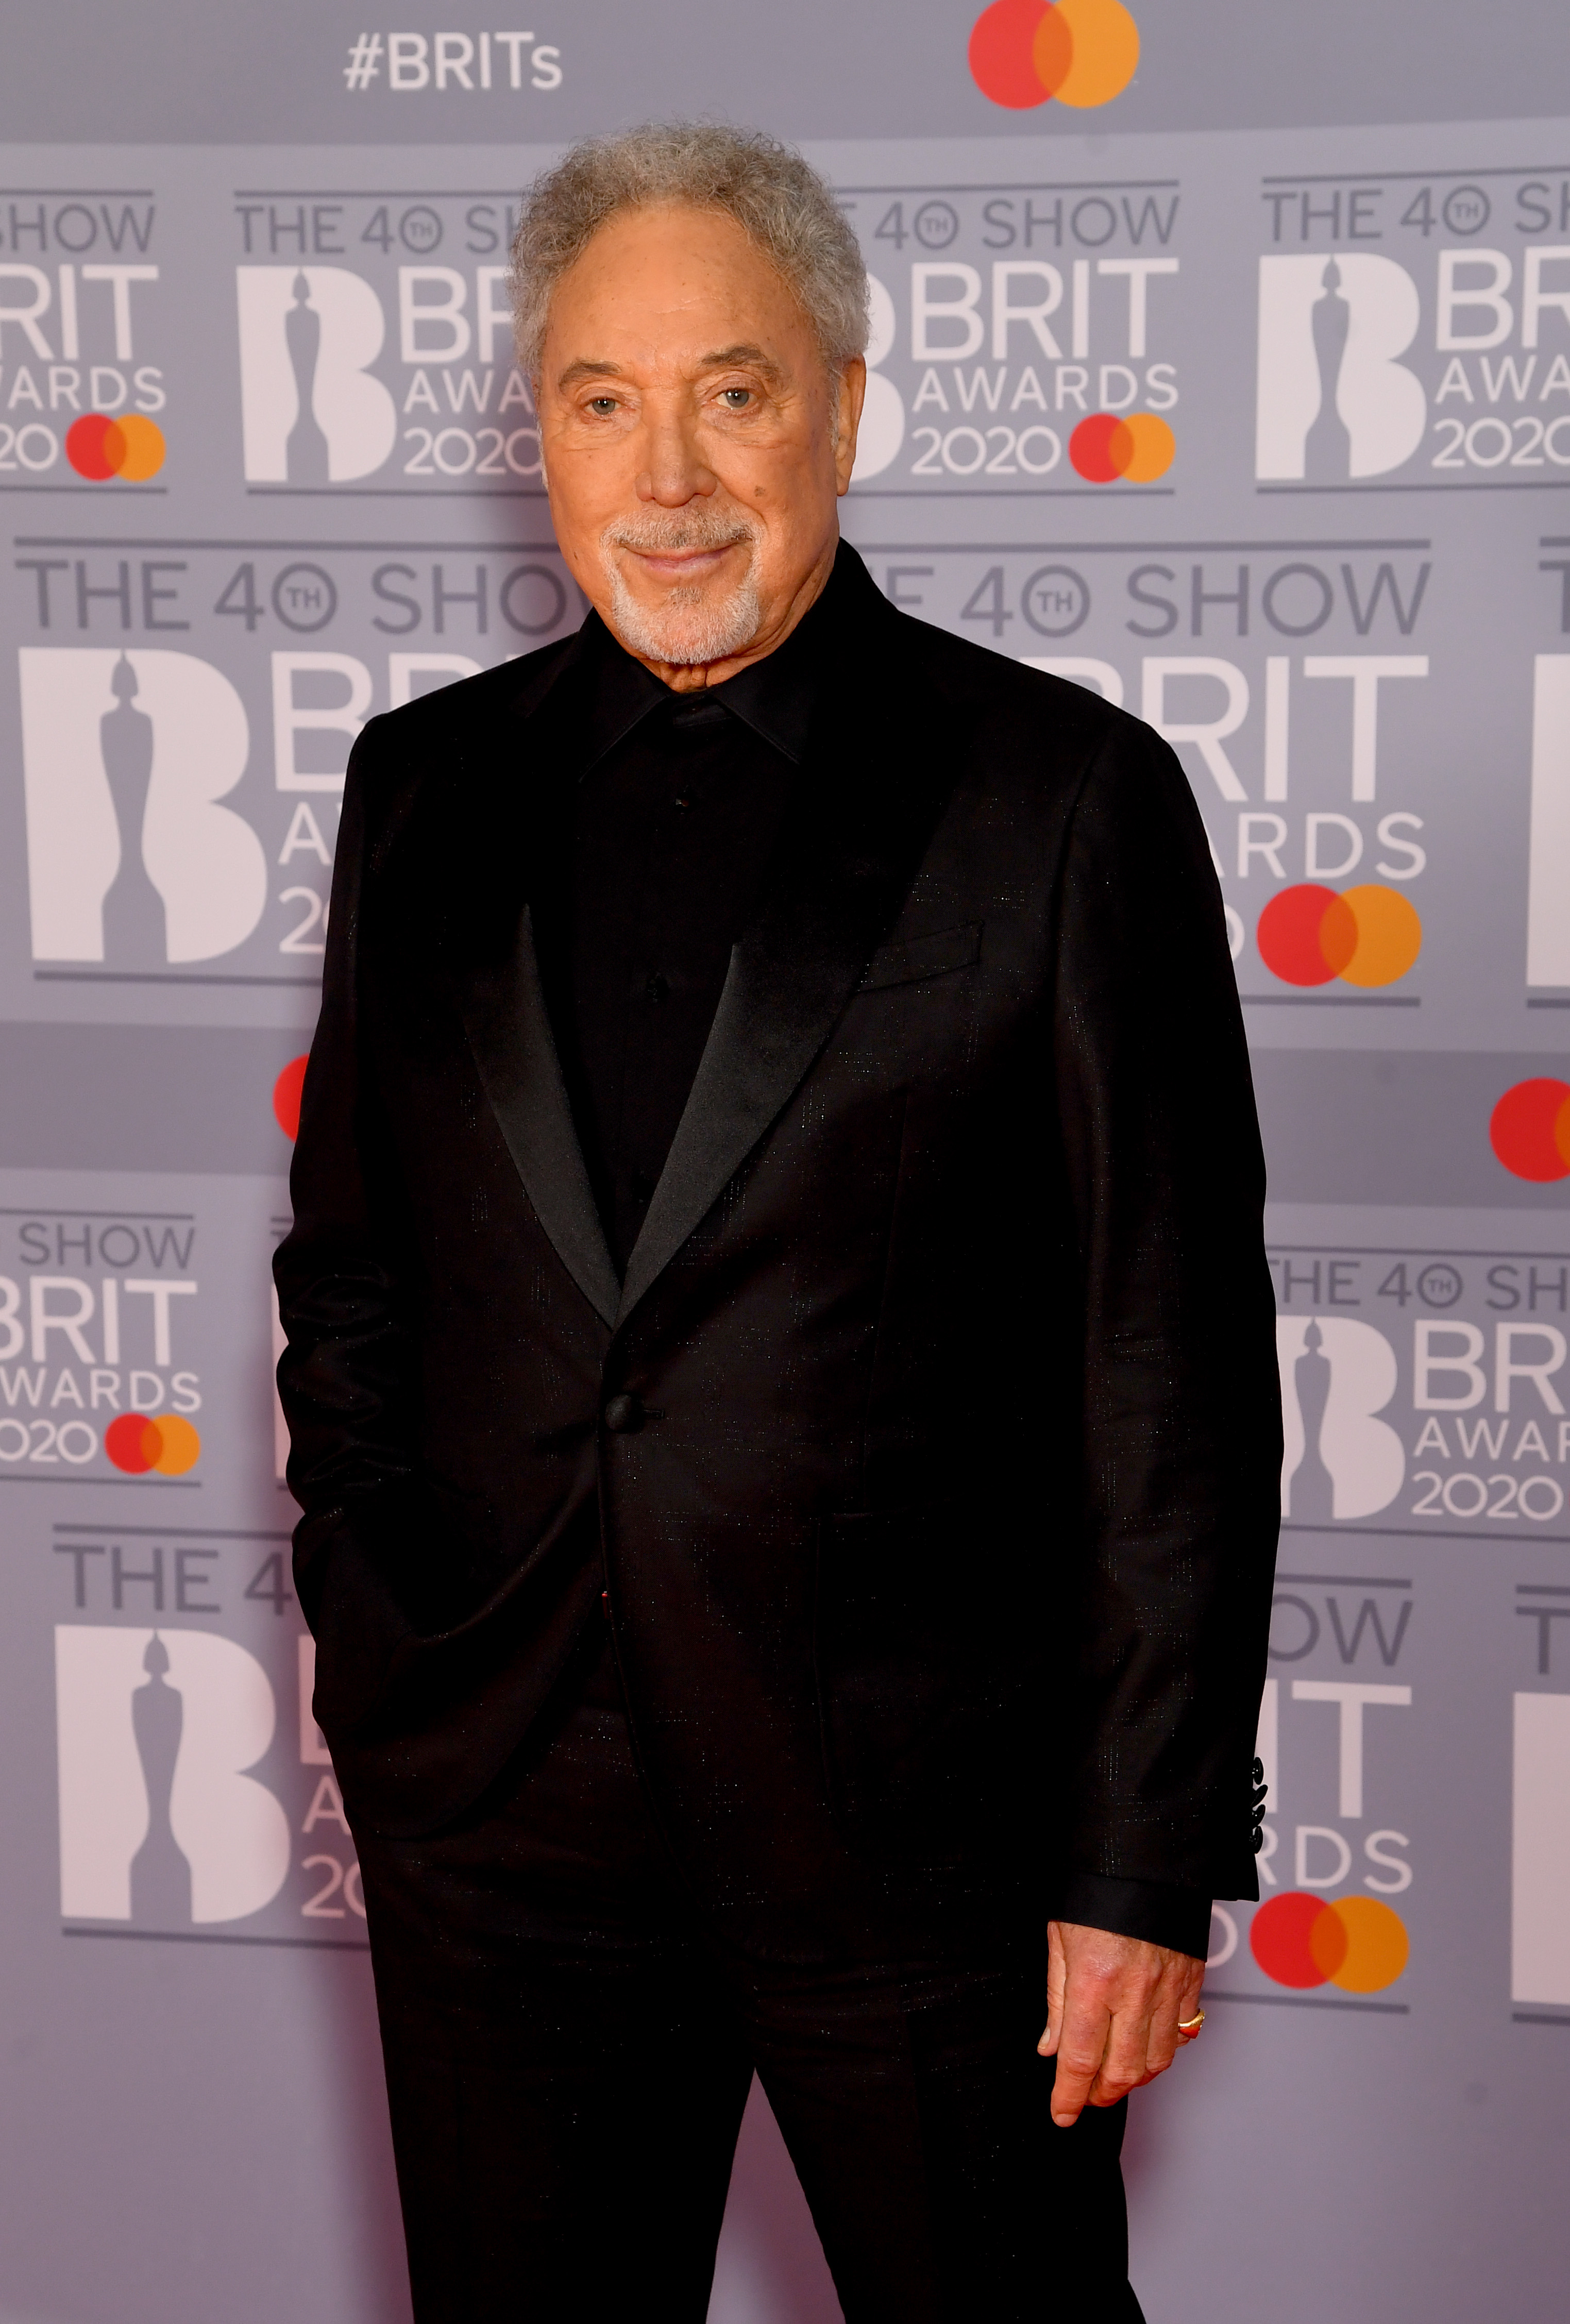 Sir Tom Jones attends The BRIT Awards 2020 at The O2 Arena on February 18, 2020 in London, England. (Photo by Dave J Hogan/Getty Images)